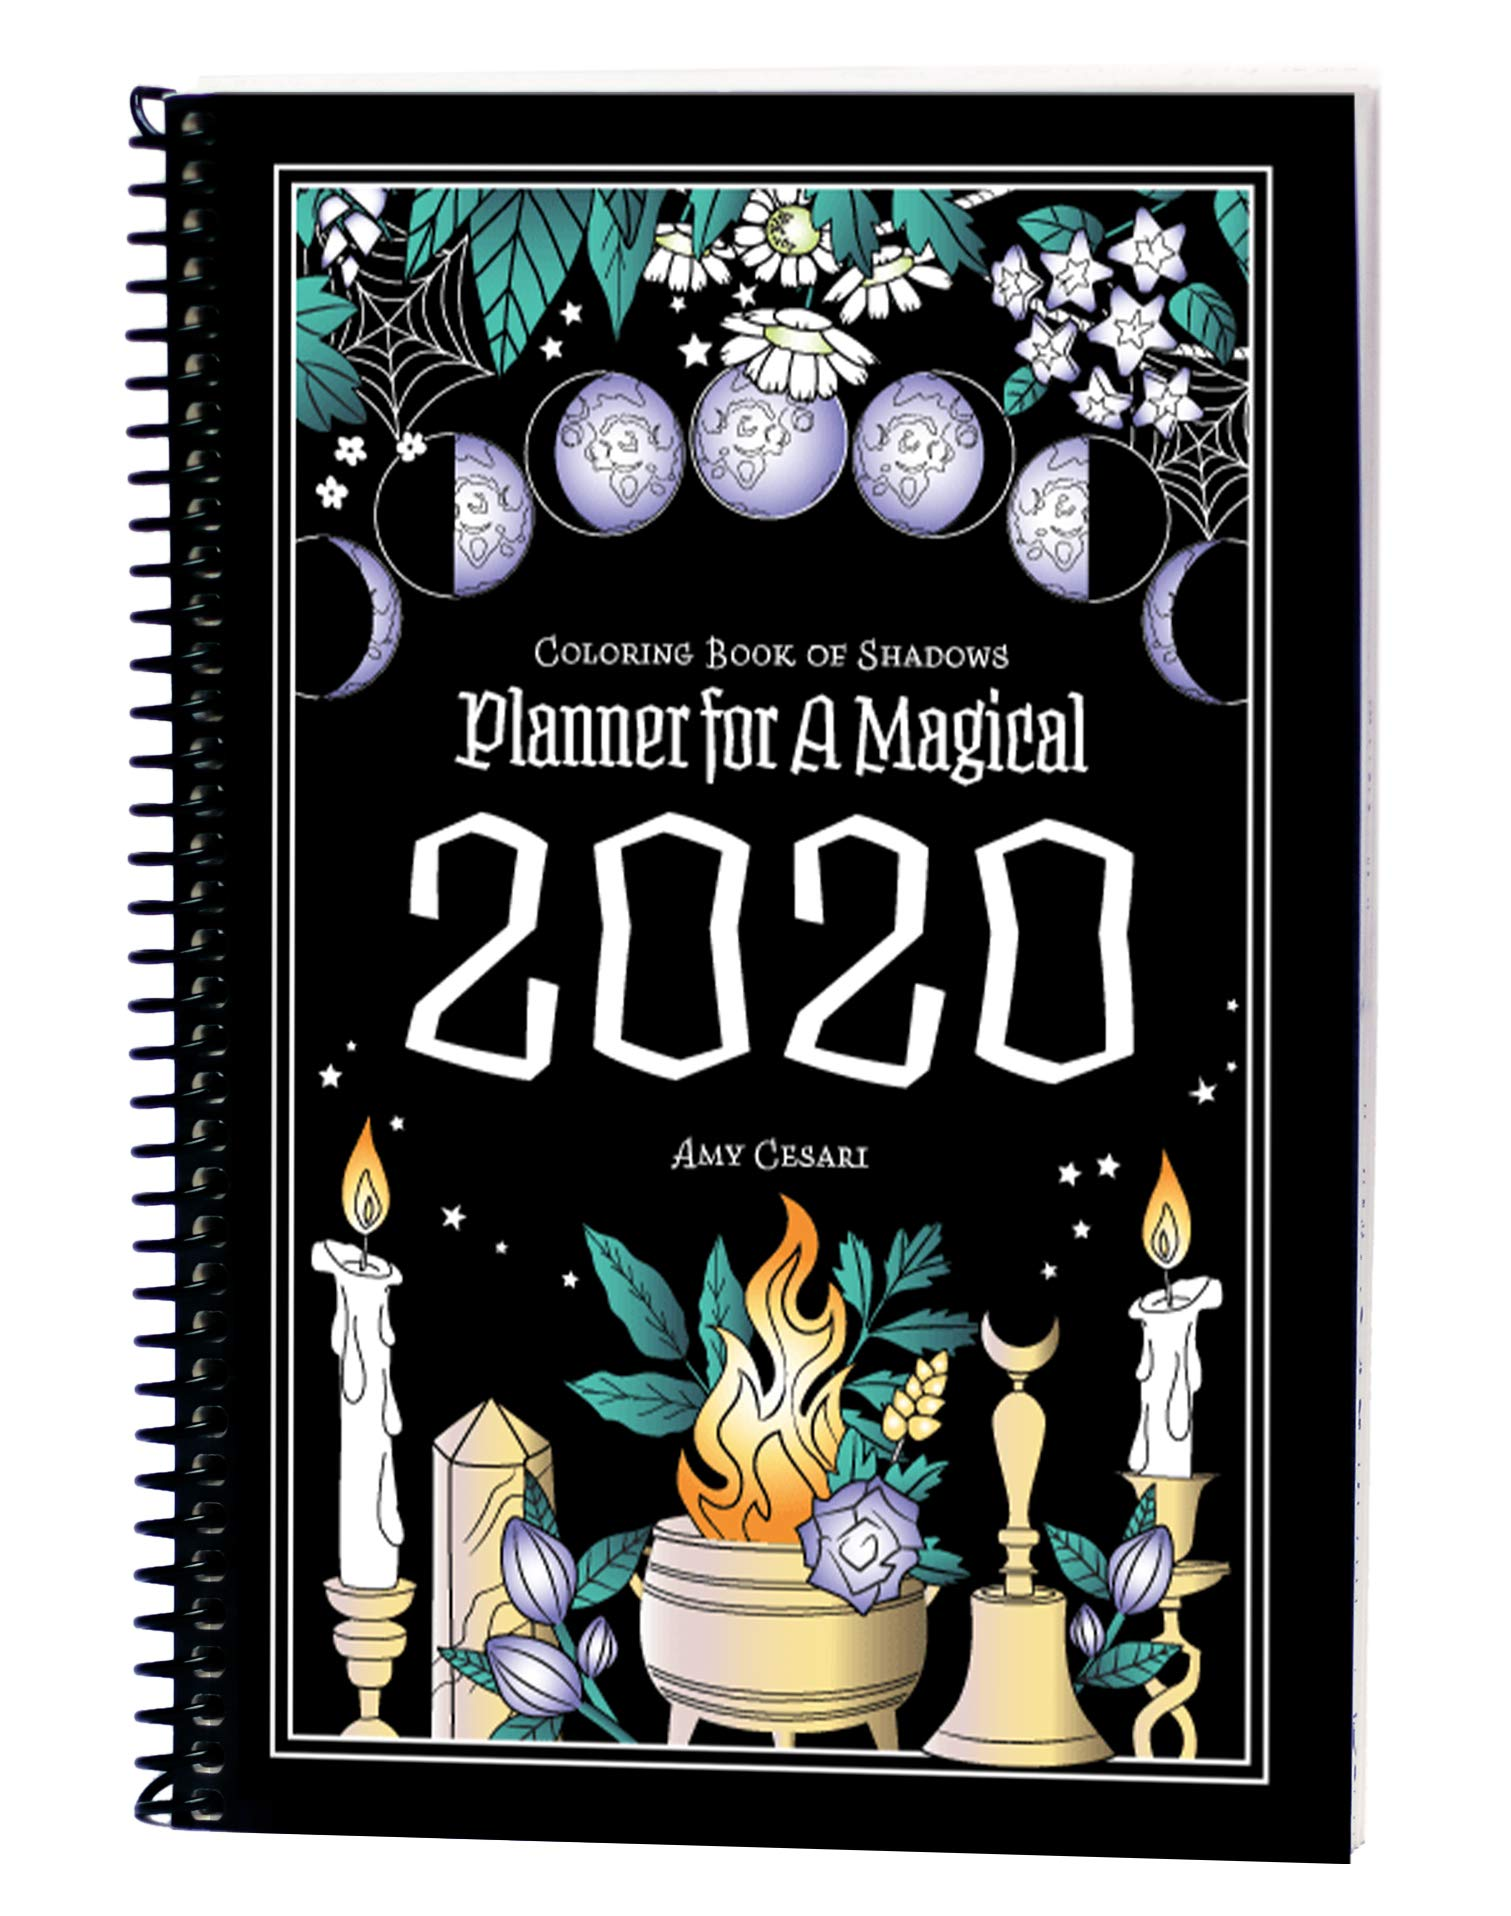 Coloring Book of Shadows Planner for a Magical 2020 | The Best 2020 Pagan and Witchy Planners | WitchcraftedLife.com